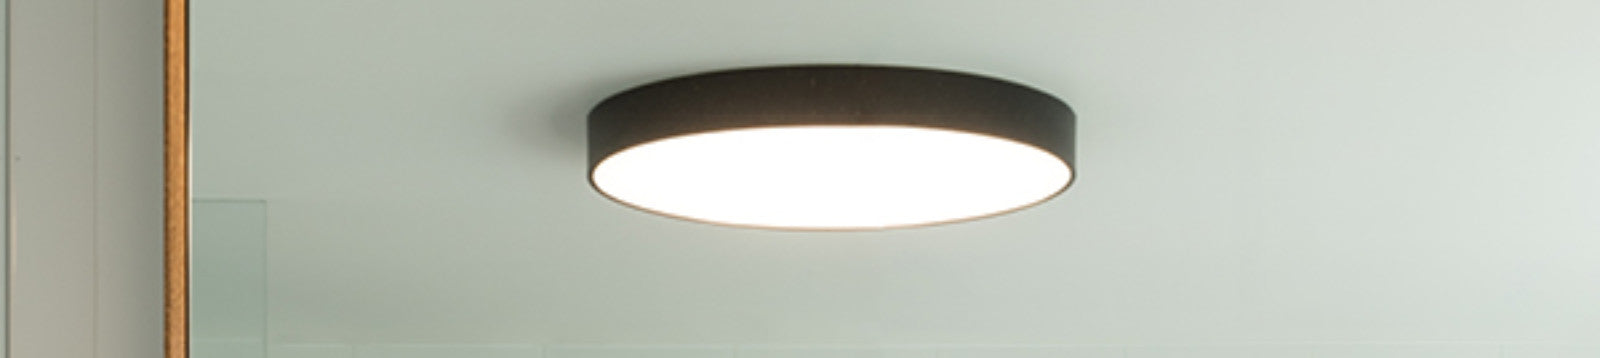 Interior Lighting - Ceiling Lights